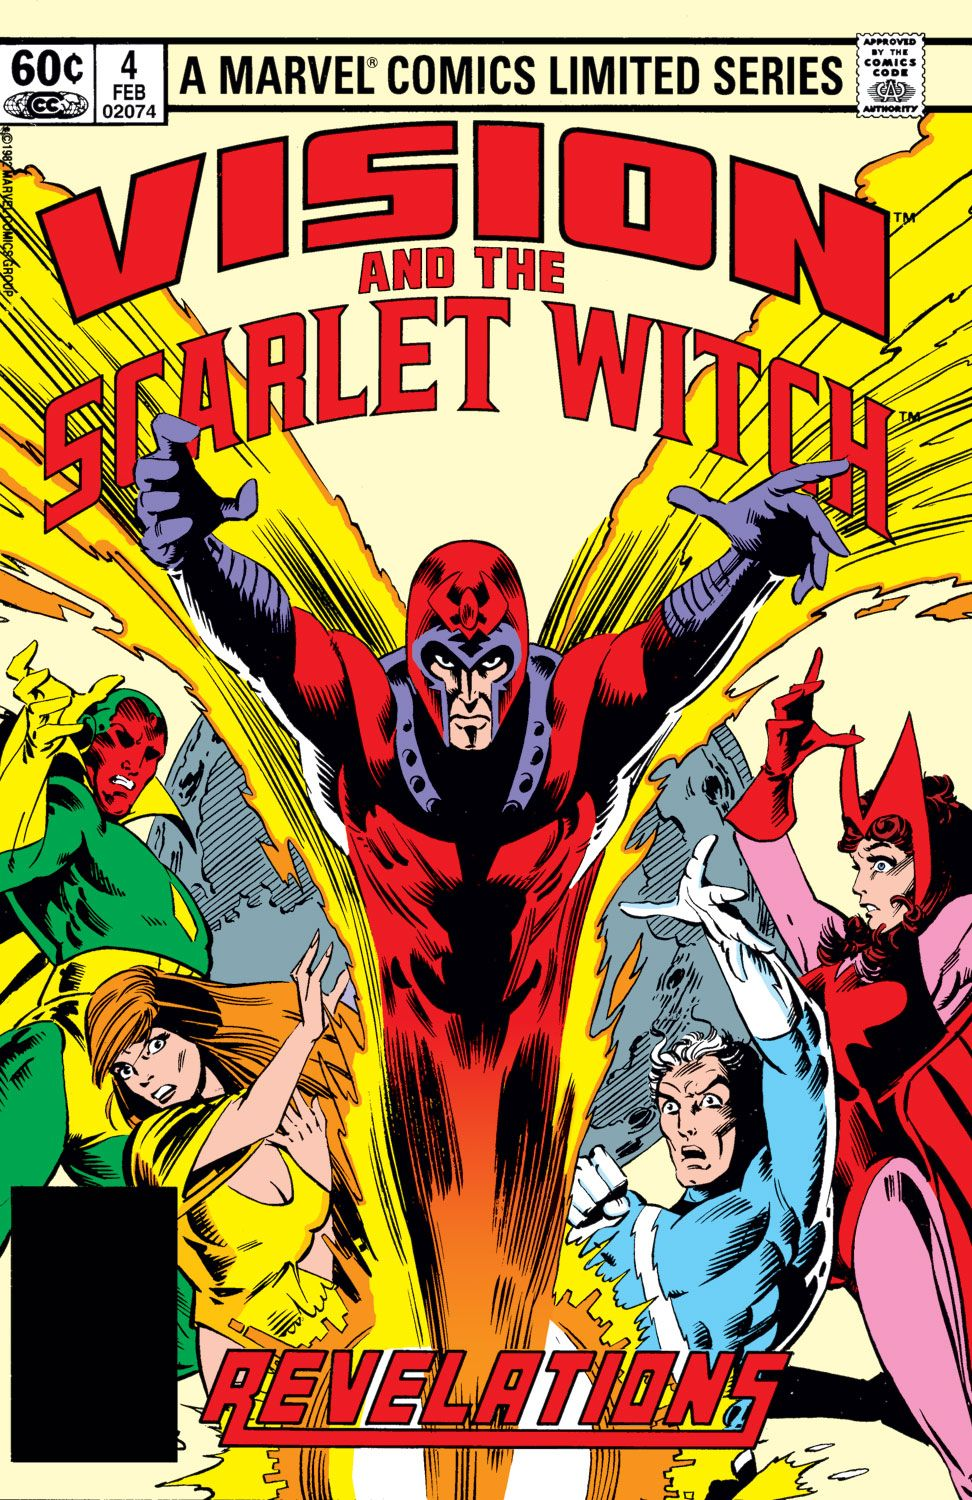 http://www.bing.com/images/search?q=Scarlet Witch and Vision